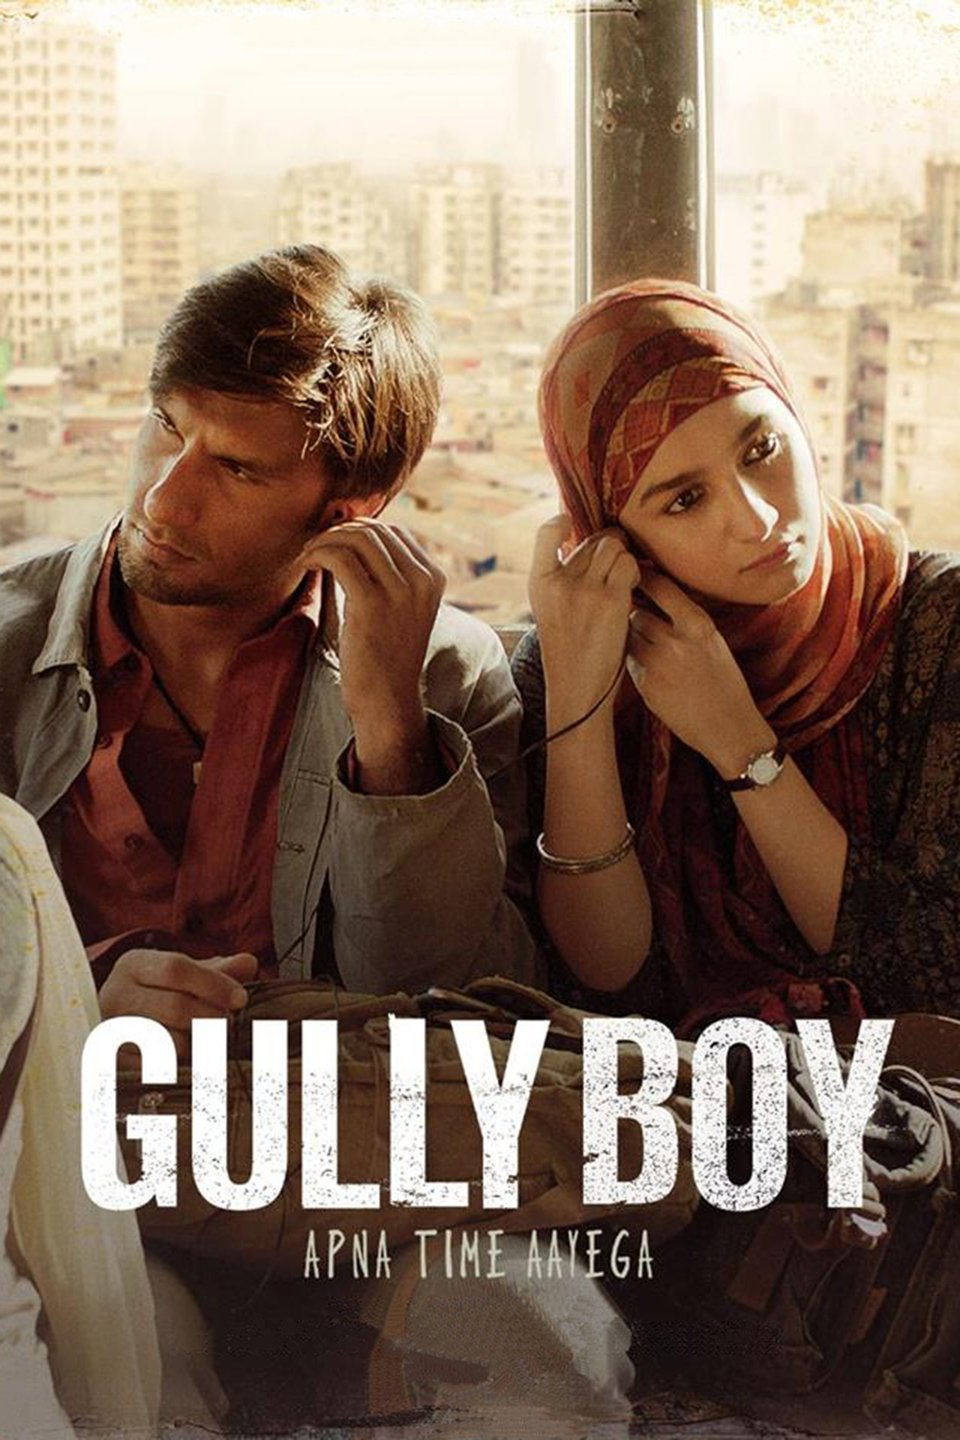 Gully Boy (2019) Hindi 720p WEB-DL 1.1GB